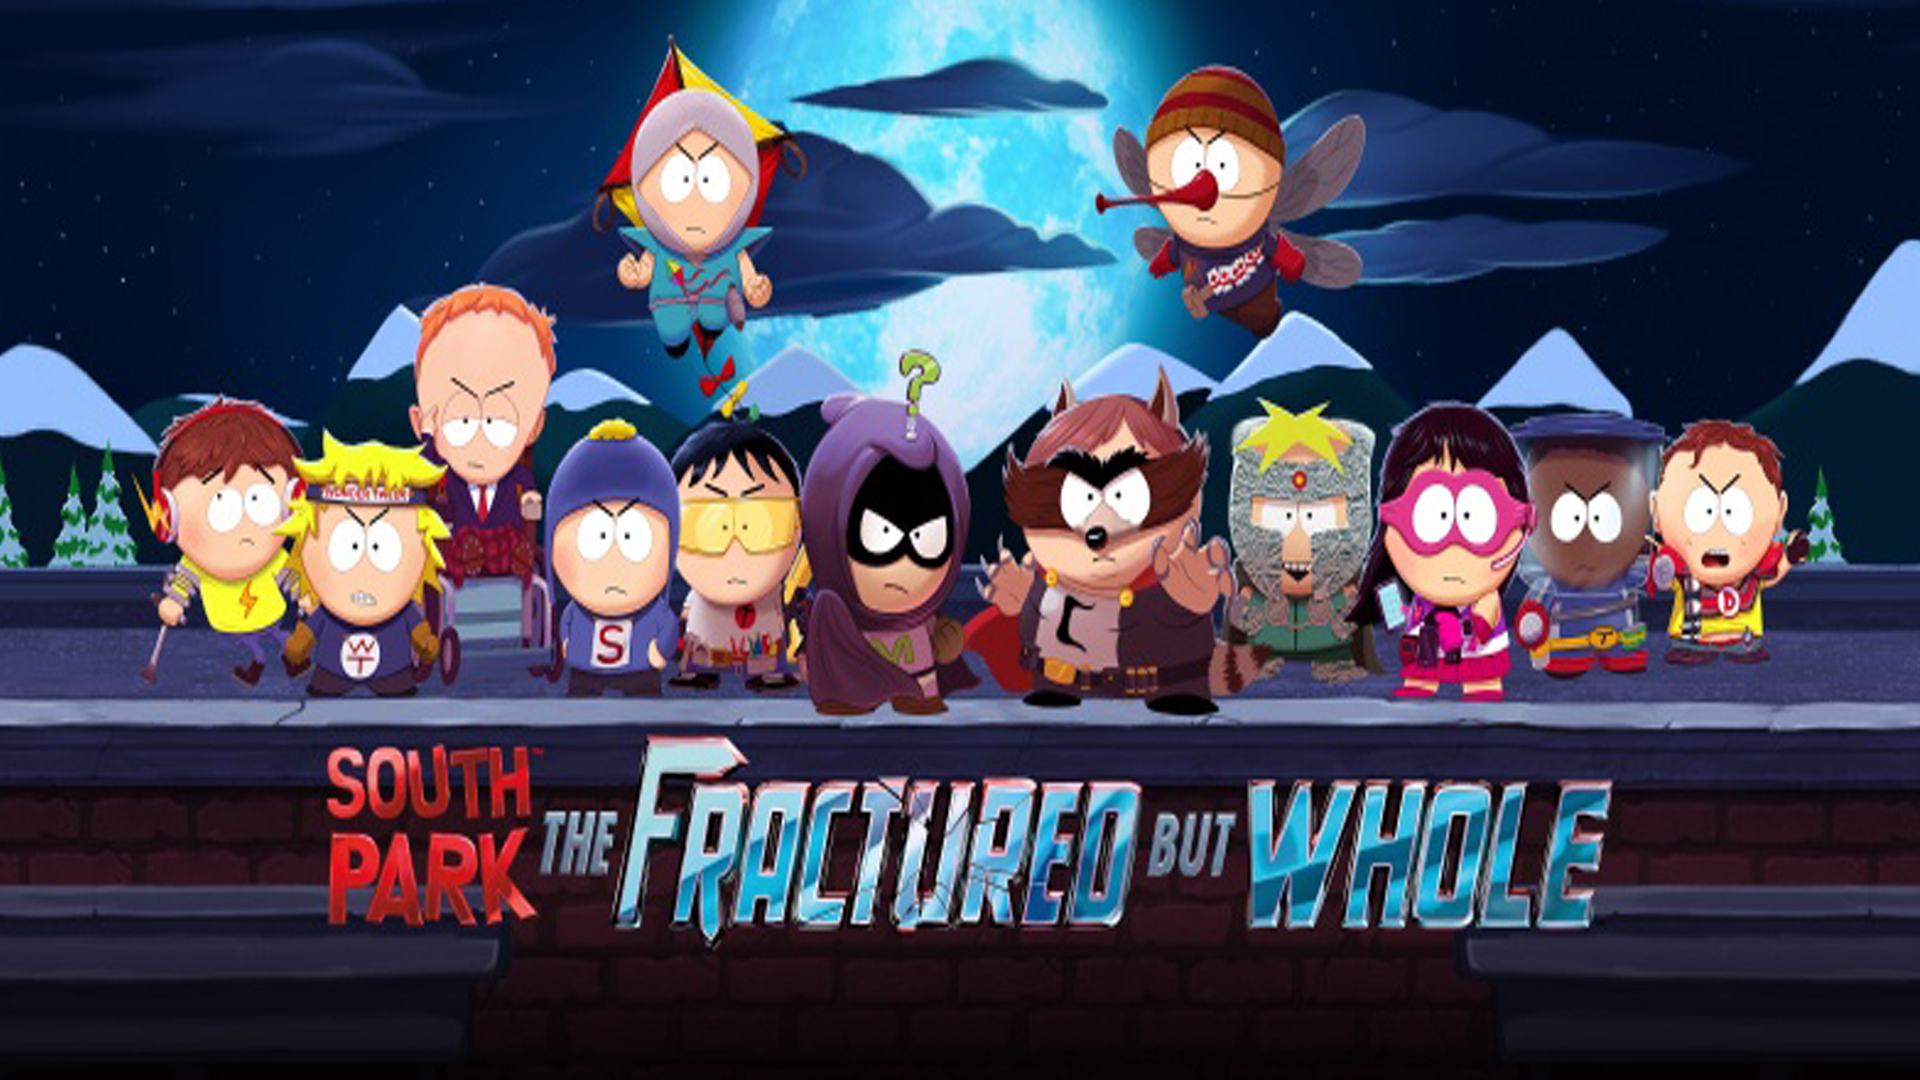 Ubisoft, South Park: The Fractured, Evil Within 2, Xbox One, Indie Game, Marvel Vs Capcom: Infinite, Capcom, Bethesda Softworks, Mason Vera Paine, Millennial, Ray Carsillo, EGMNow.Net